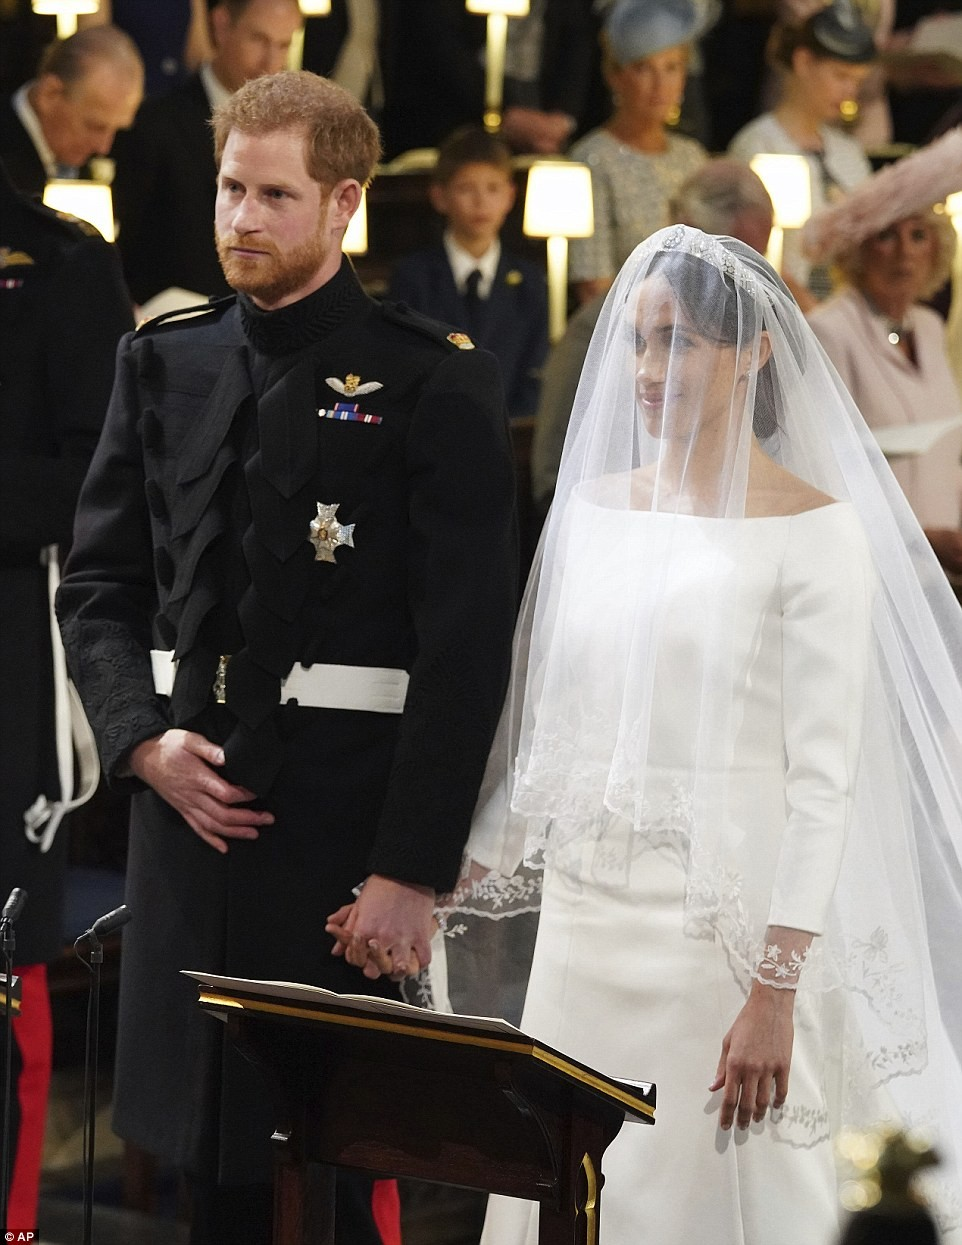 Look of love on Prince Harry and Meghan Markle